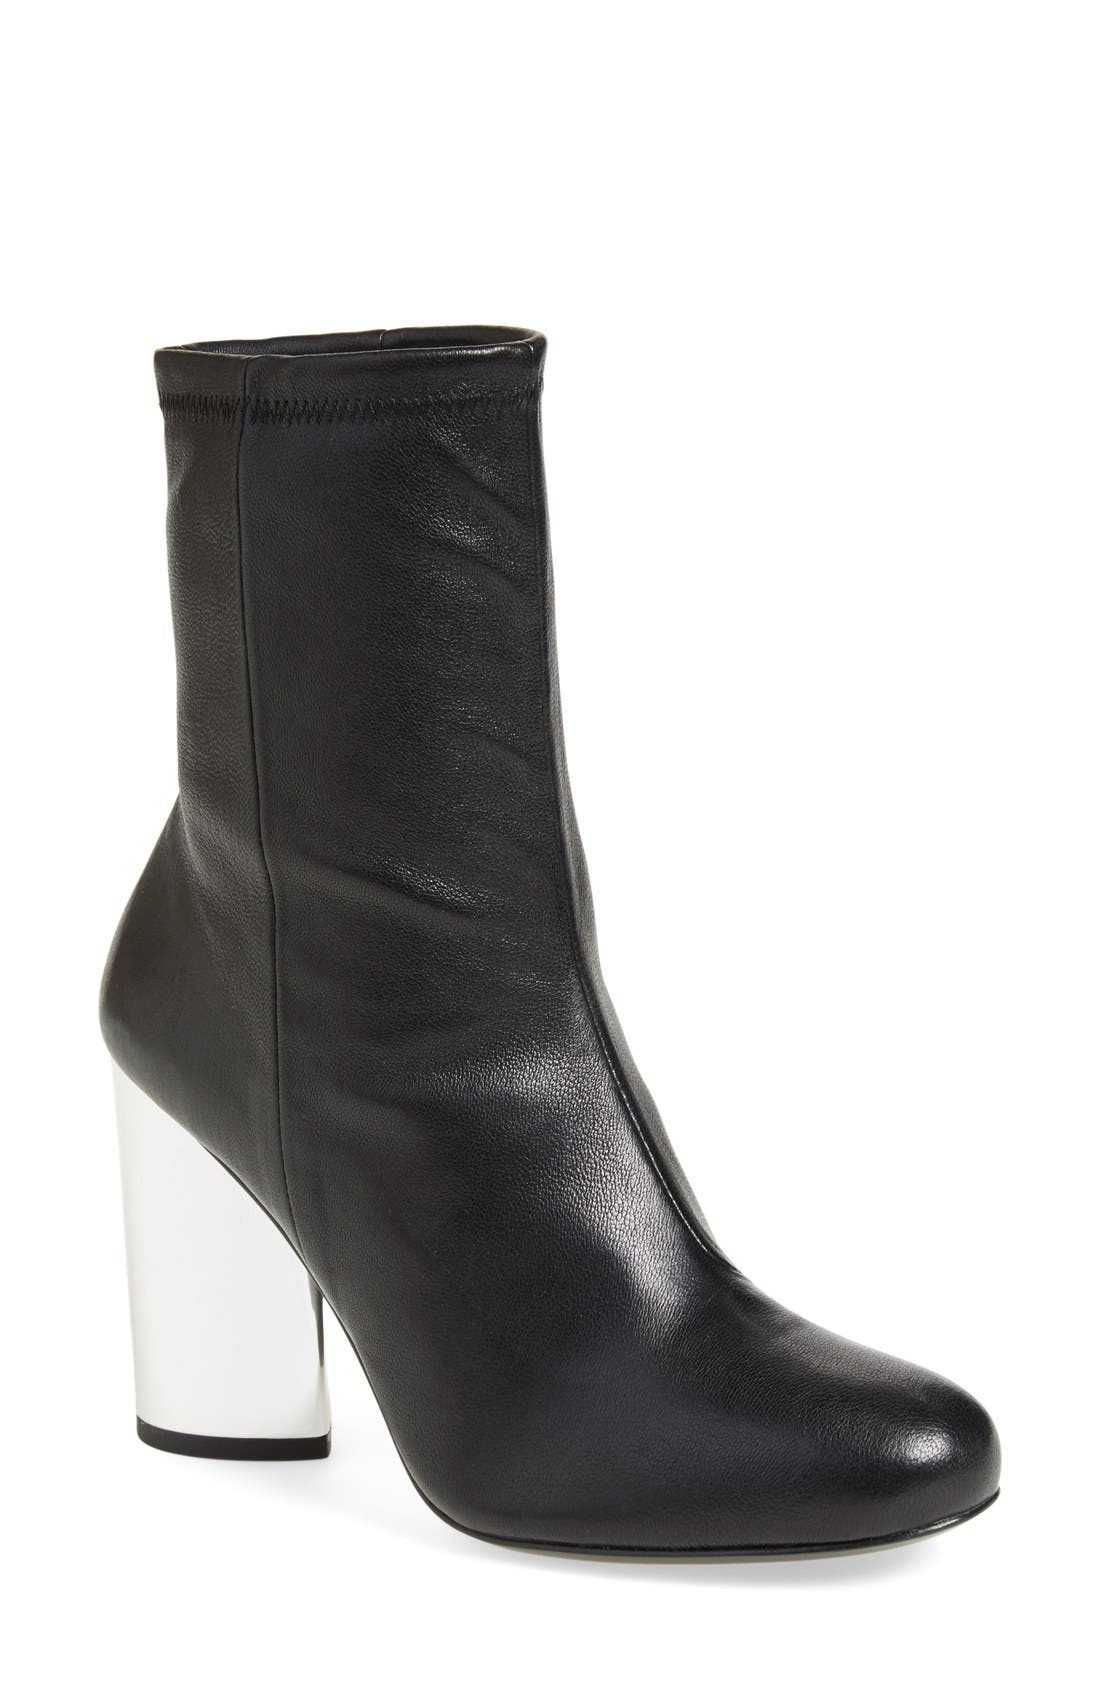 'Zloty' Round Toe Bootie,                         Main,                         color, 002